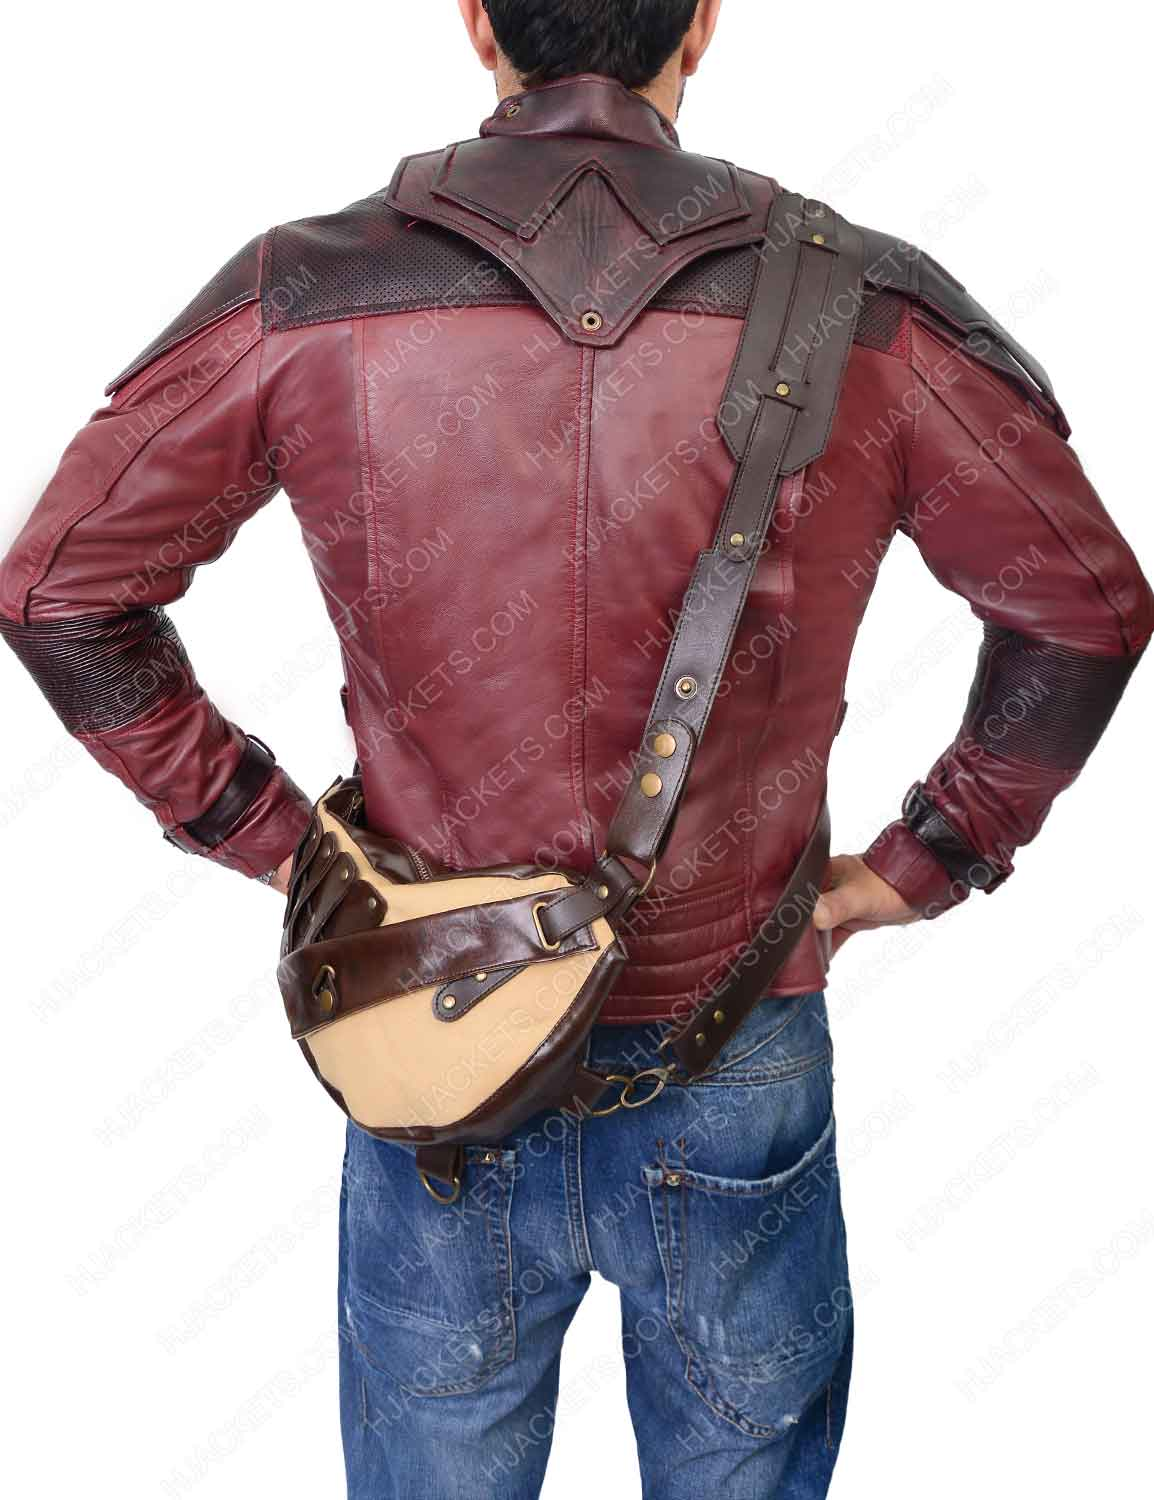 7c3d5d2dd Star Lord Jacket   Guardians of the Galaxy Vol 2 Leather Jacket